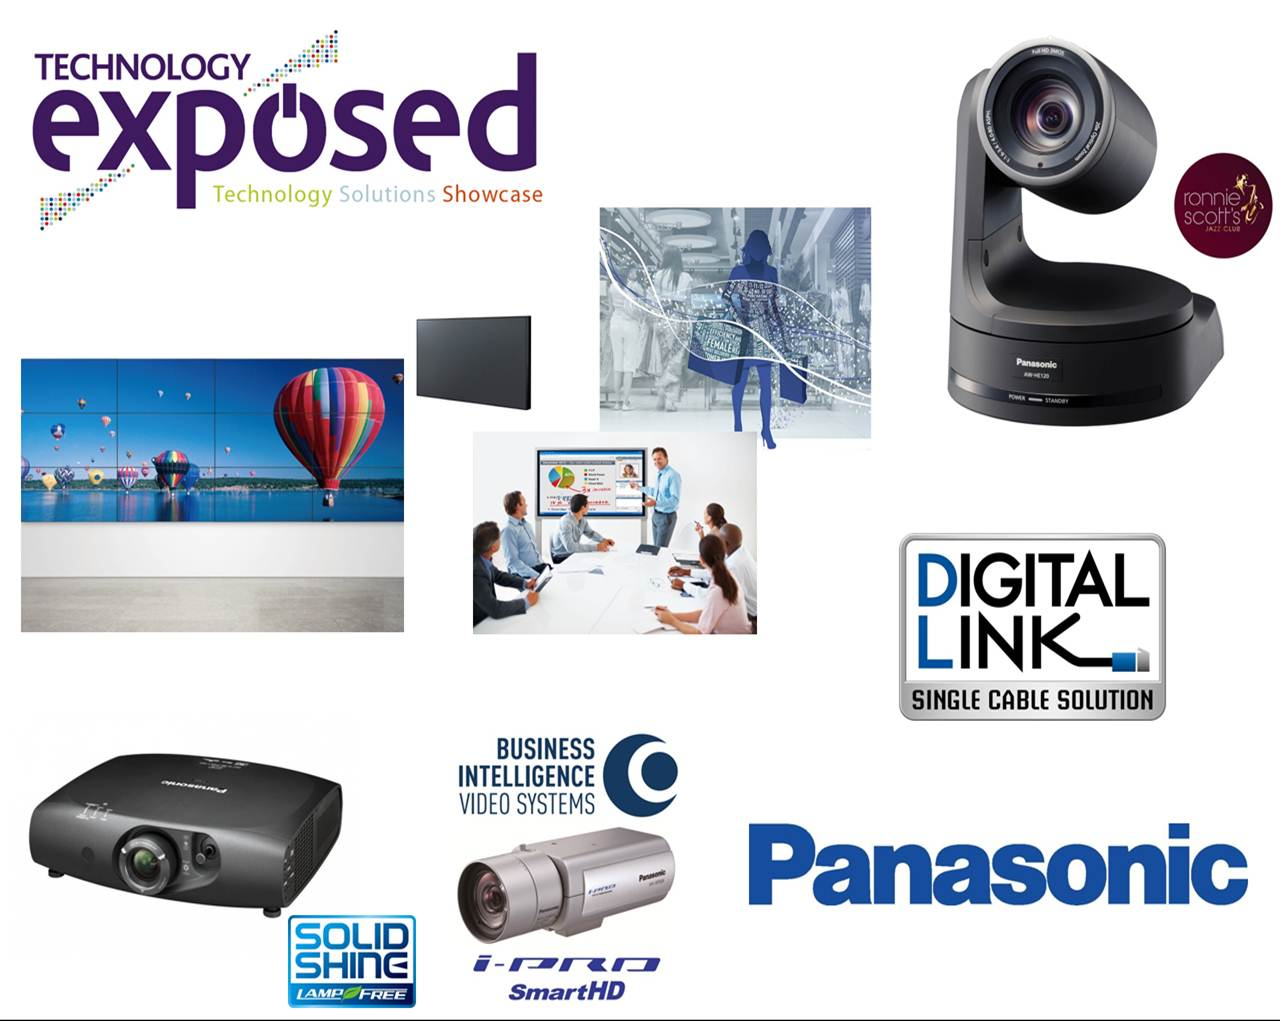 Panasonic excited to unveil new B2B technology at 'Technology Exposed 2013'